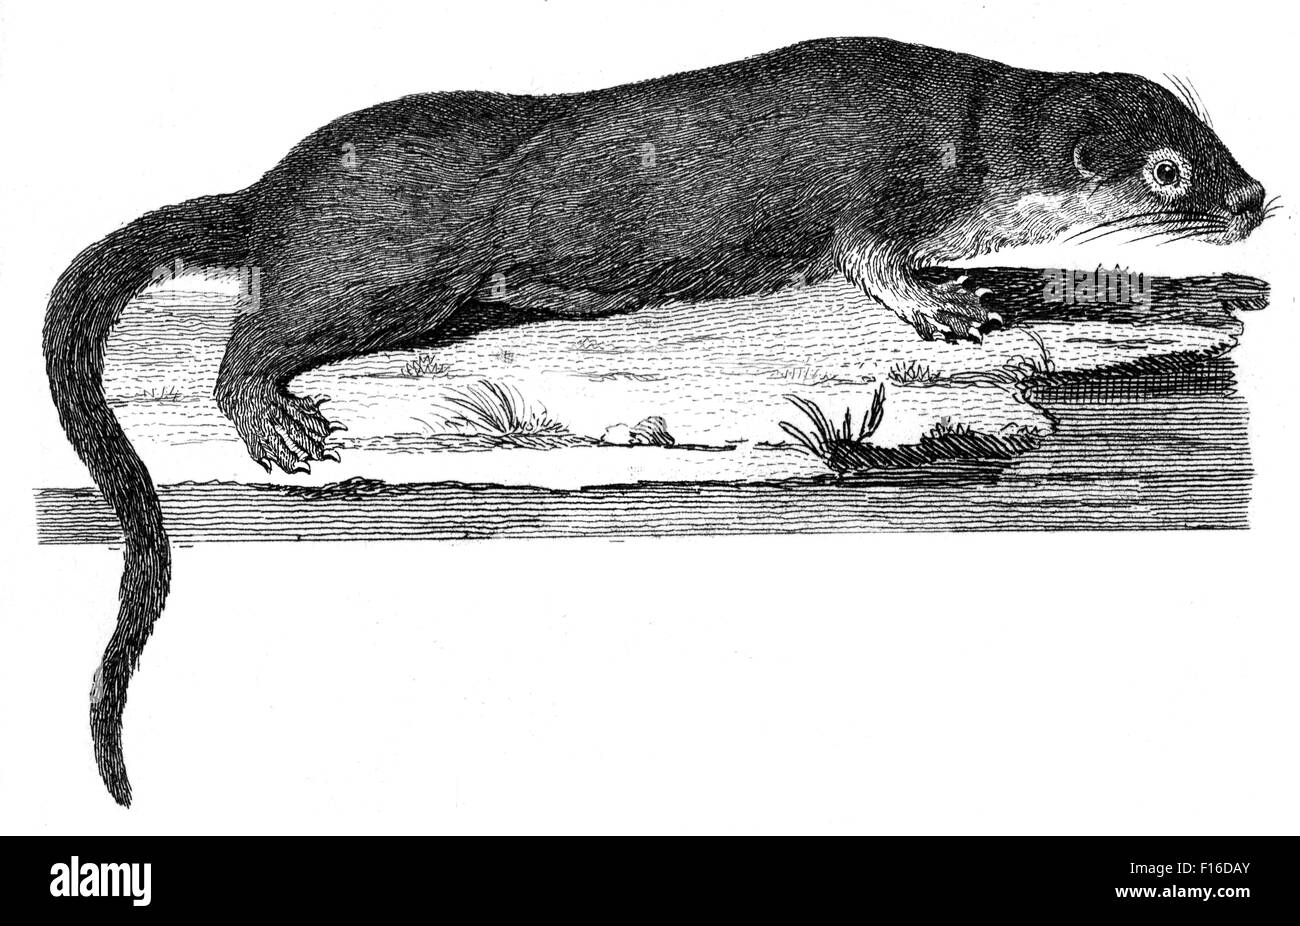 Engraved illustration titled 'Common OTTER' taken from 'British Zoology' by Thomas Pennant (1726 - Stock Image